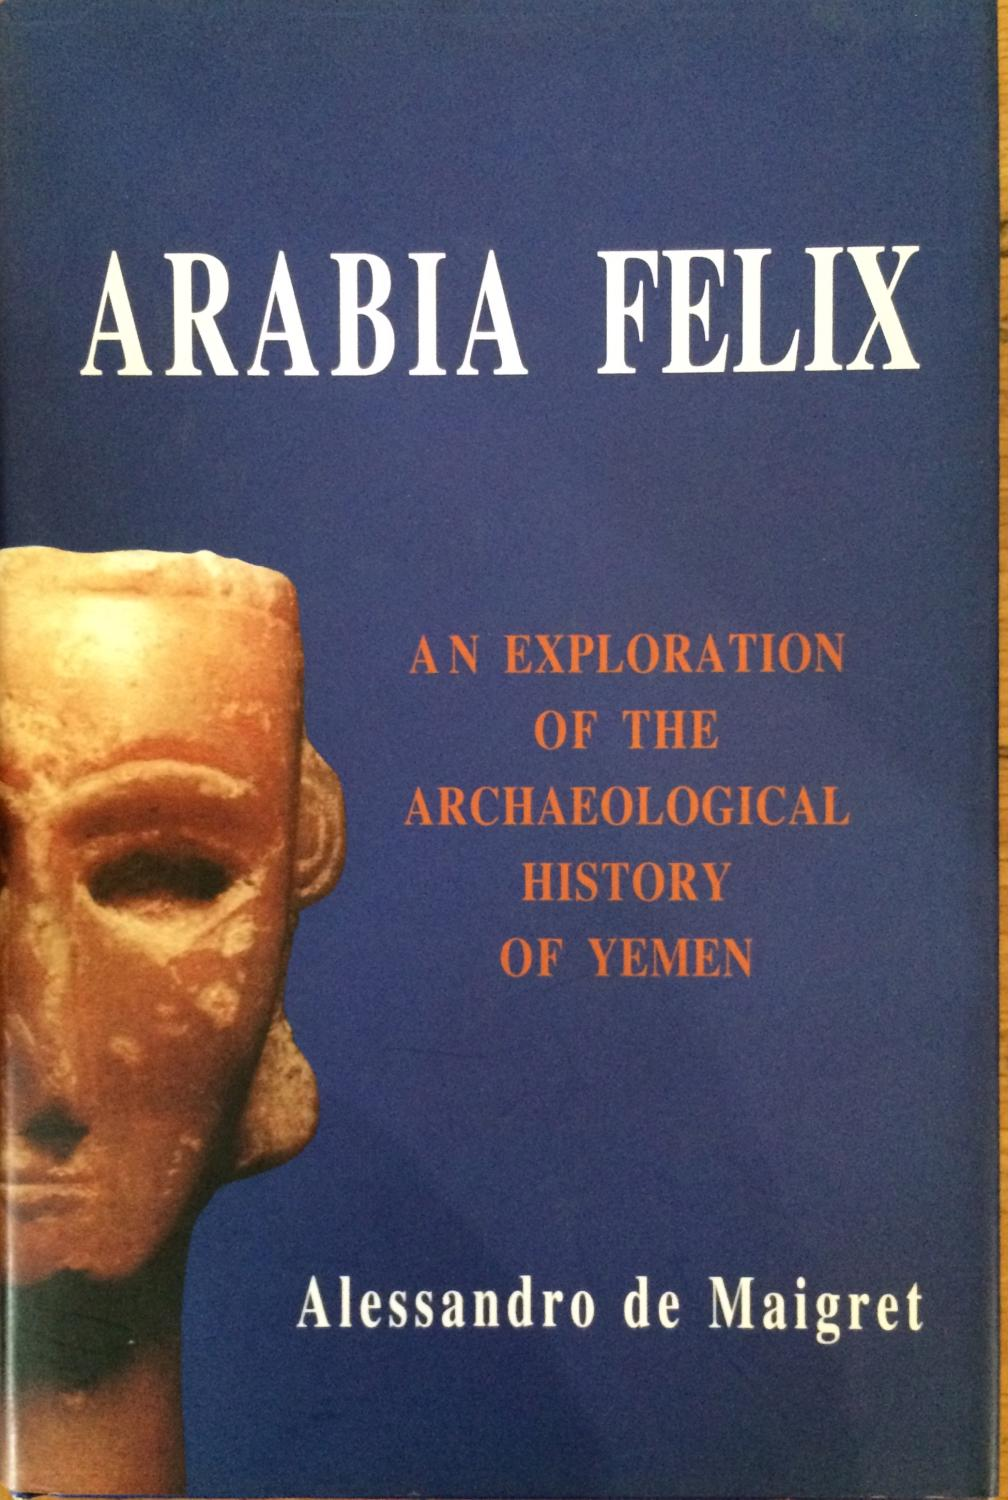 Arabia Felix - Alessandro de Maigret ; [translated by Rebecca Thompson].